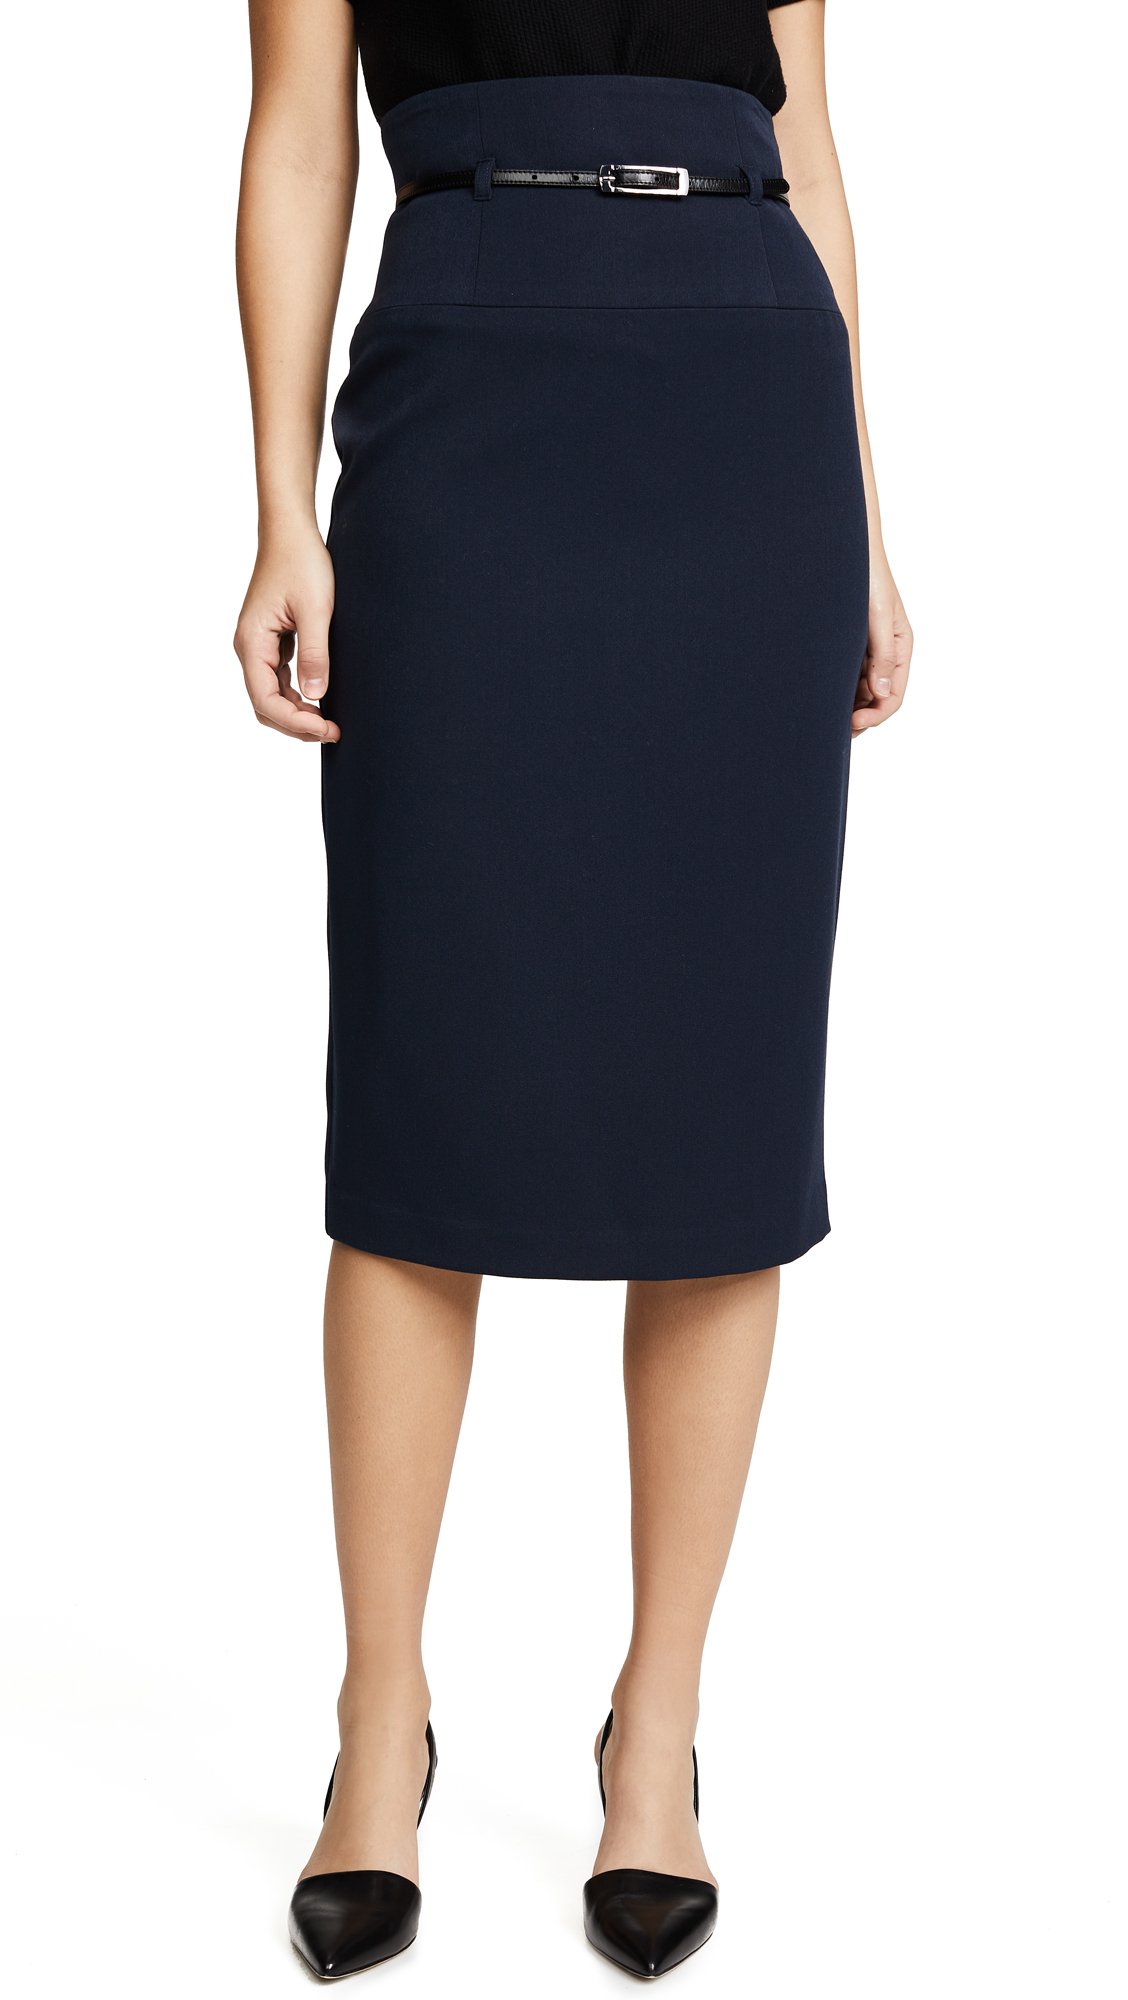 Black Halo High Waisted Pencil Skirt - Eclipse